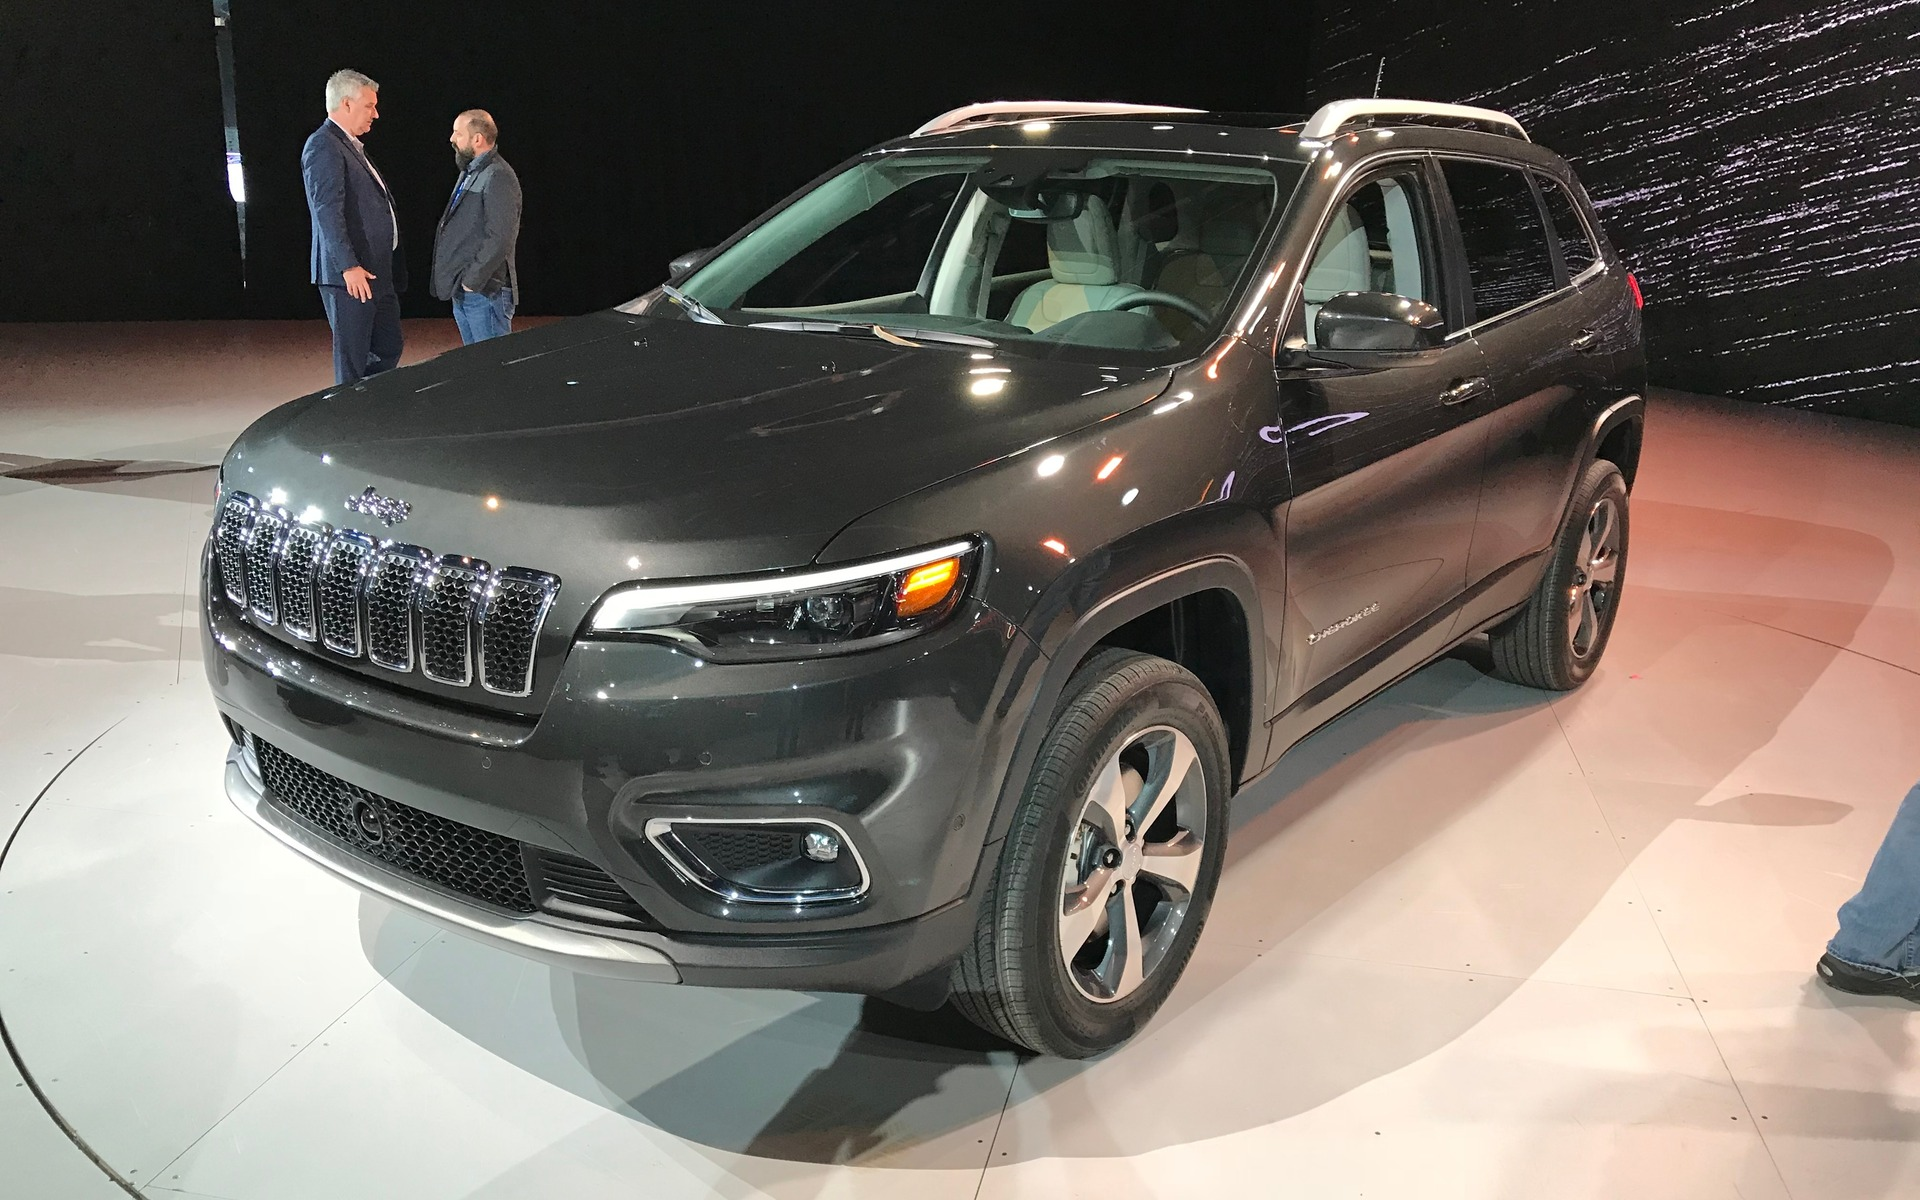 2019 jeep cherokee new look new engine the car guide. Black Bedroom Furniture Sets. Home Design Ideas